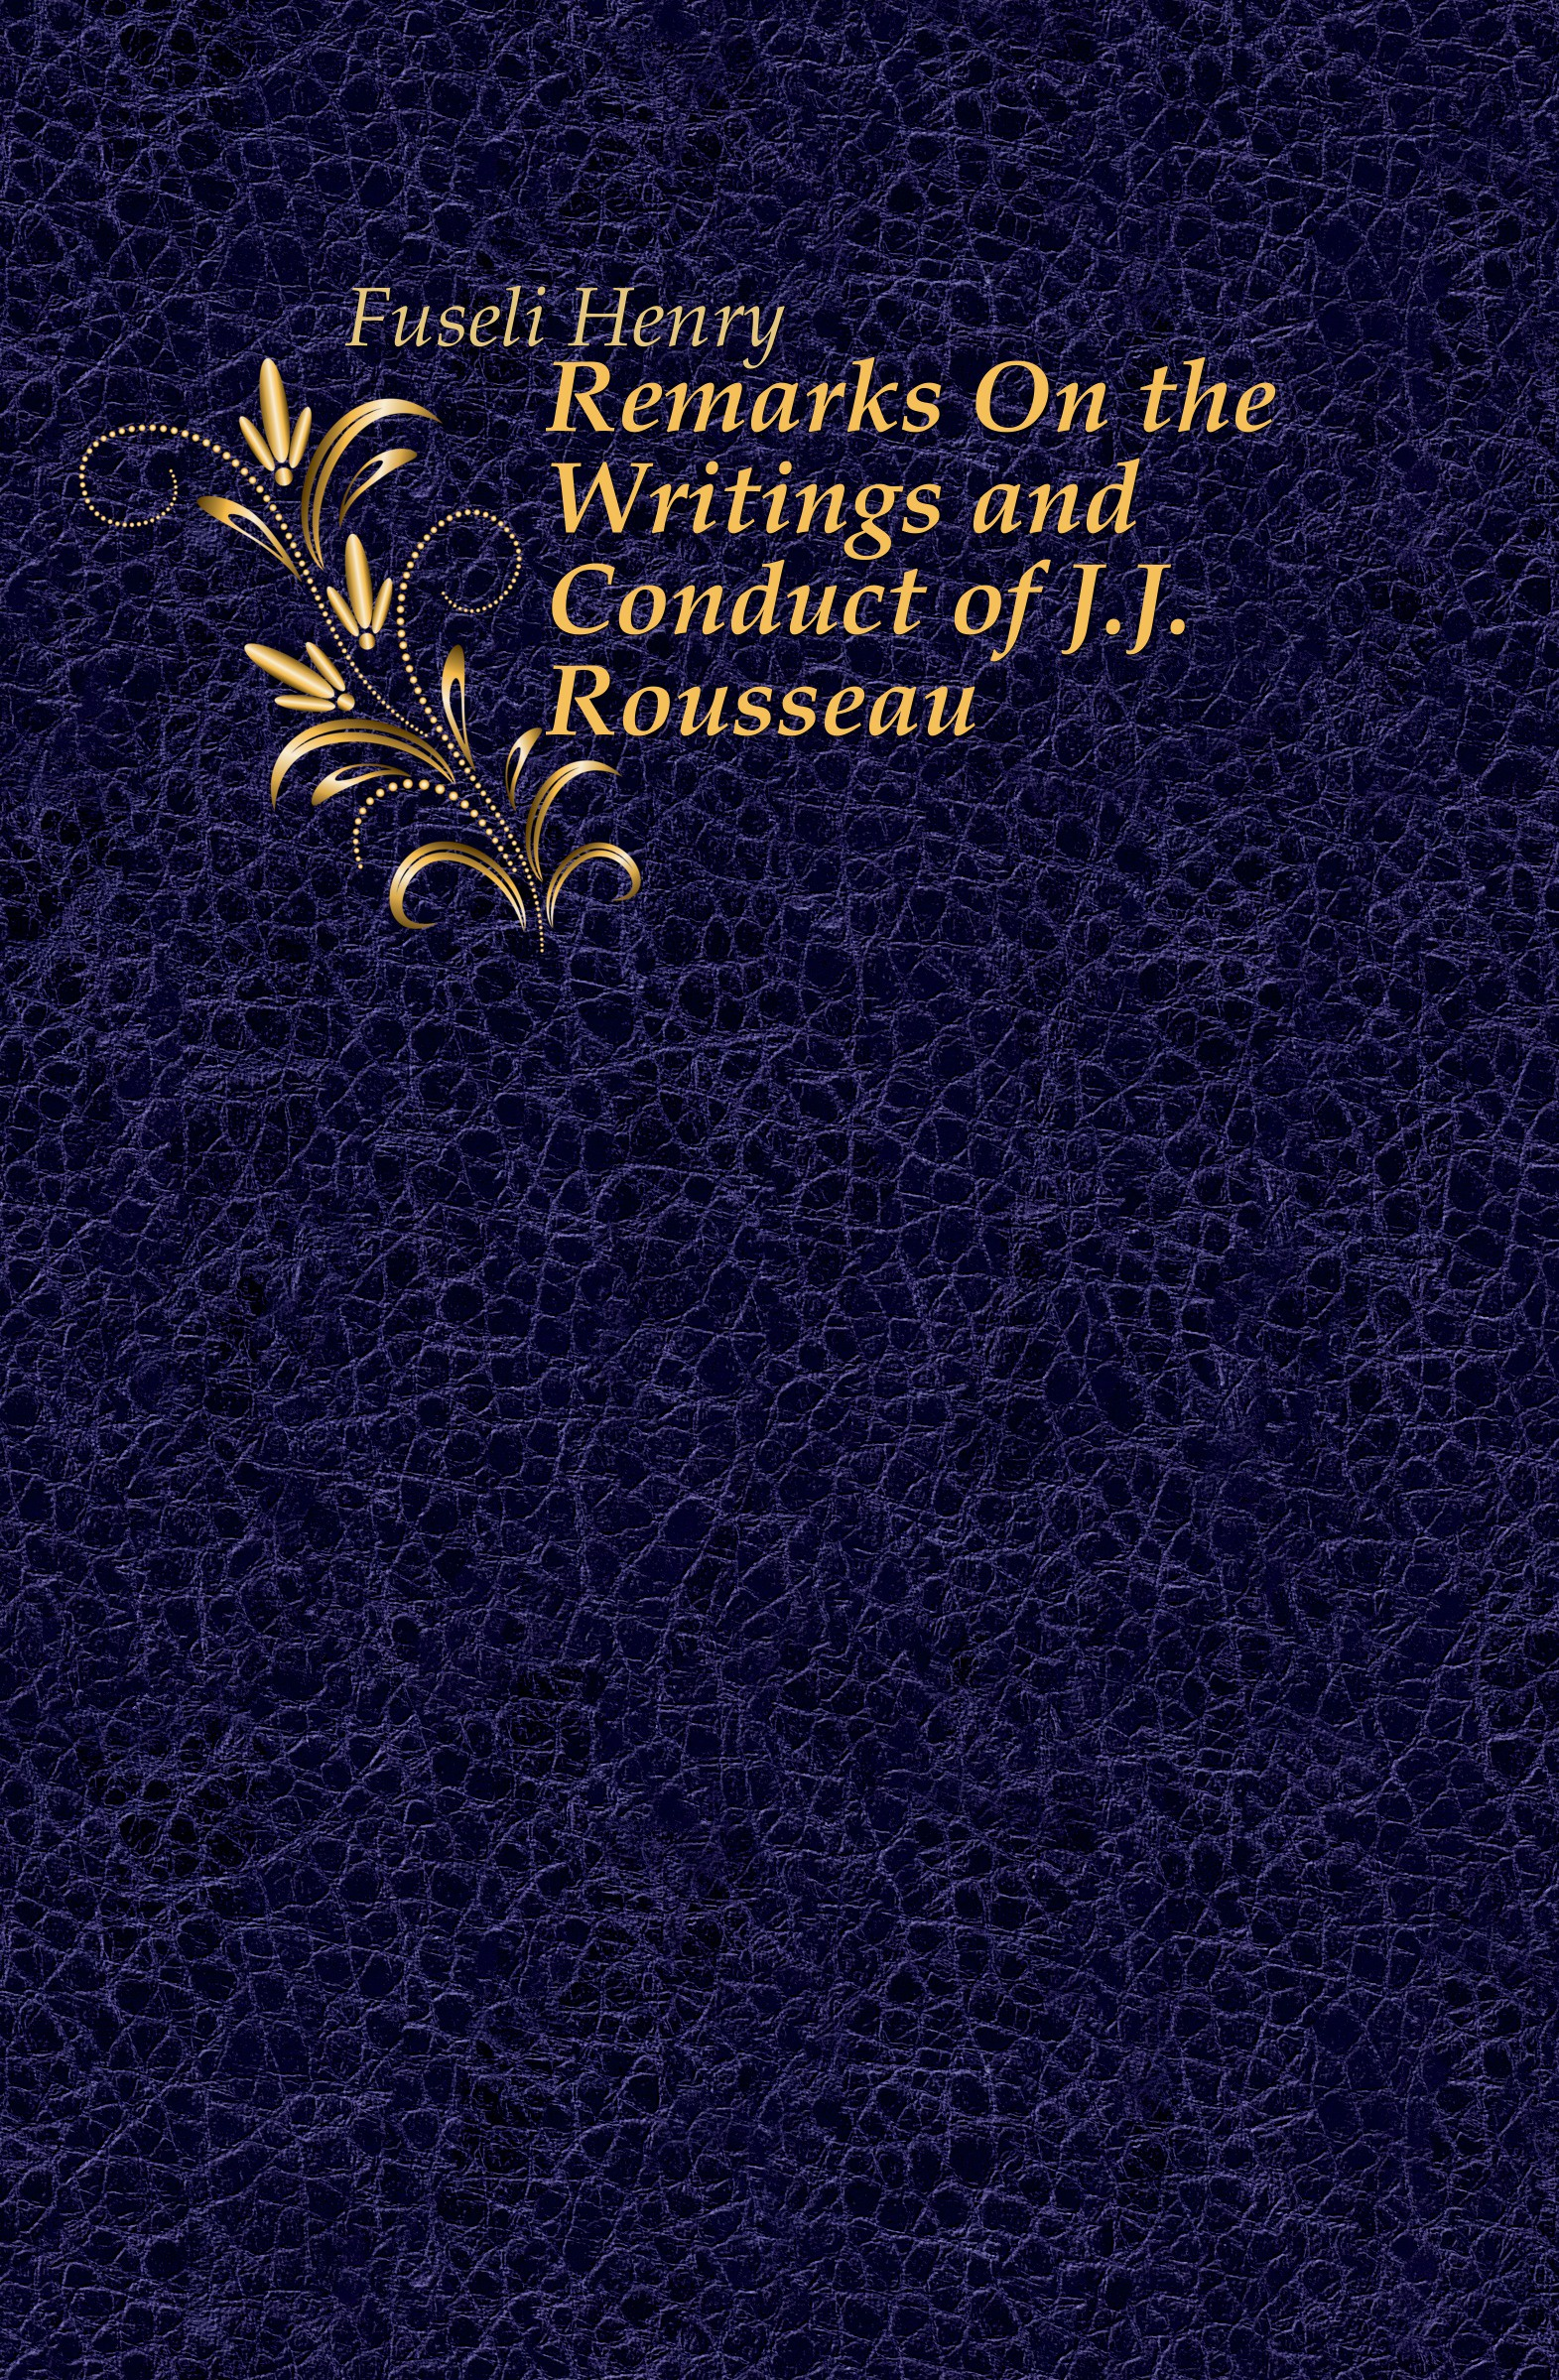 Fuseli Henry Remarks On the Writings and Conduct of J.J. Rousseau fuseli henry the life and writings of henry fuseli volume 3 of 3